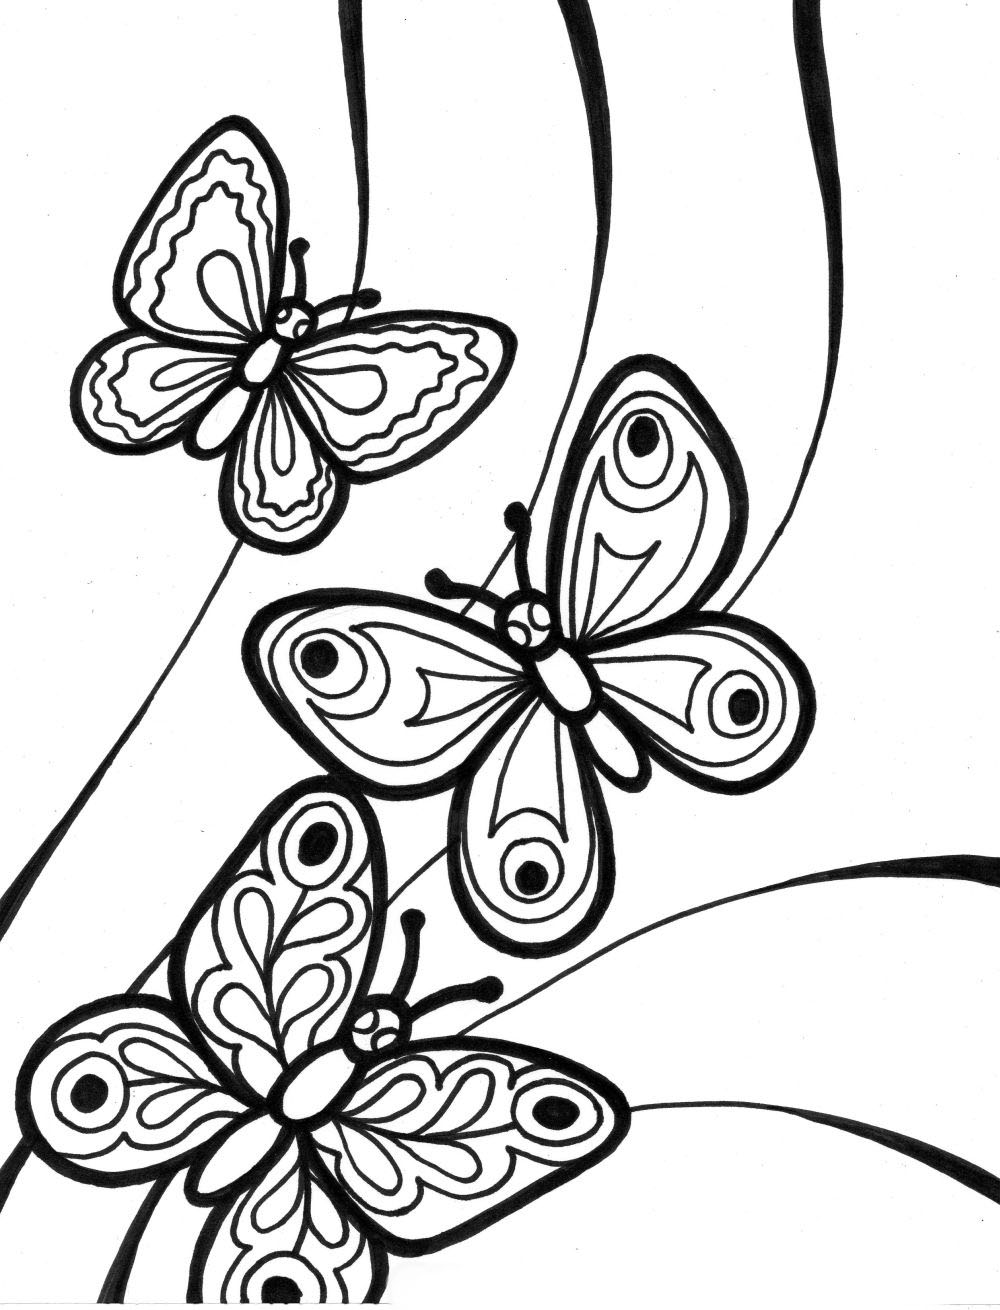 1000x1310 Mariposas Para Colorear Faciles Dibujos Adult Coloring